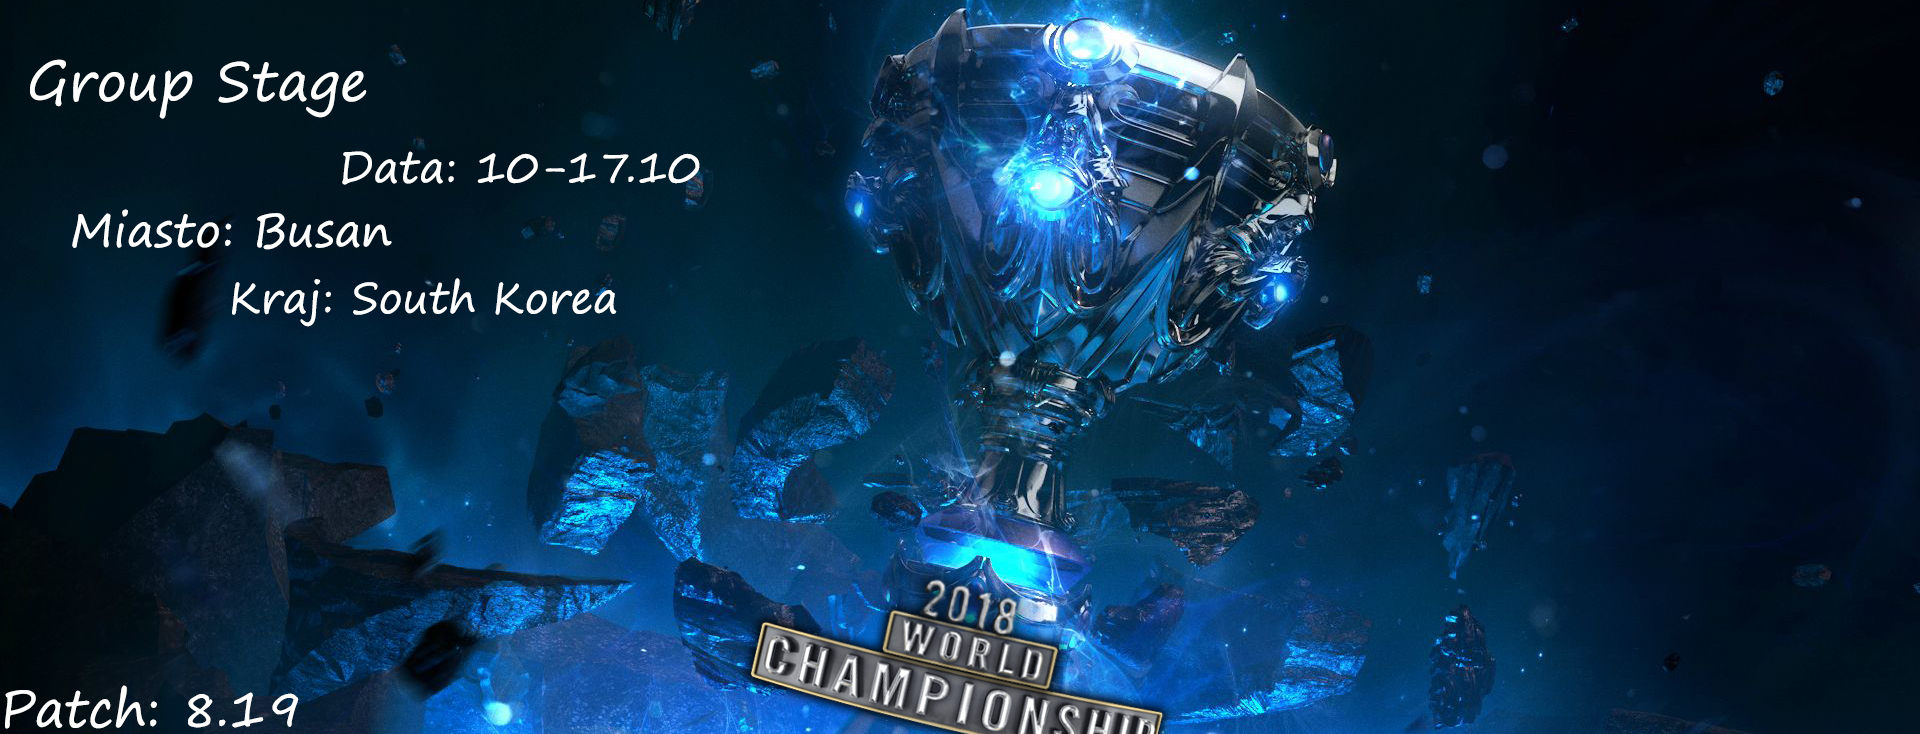 group stage worlds 2018